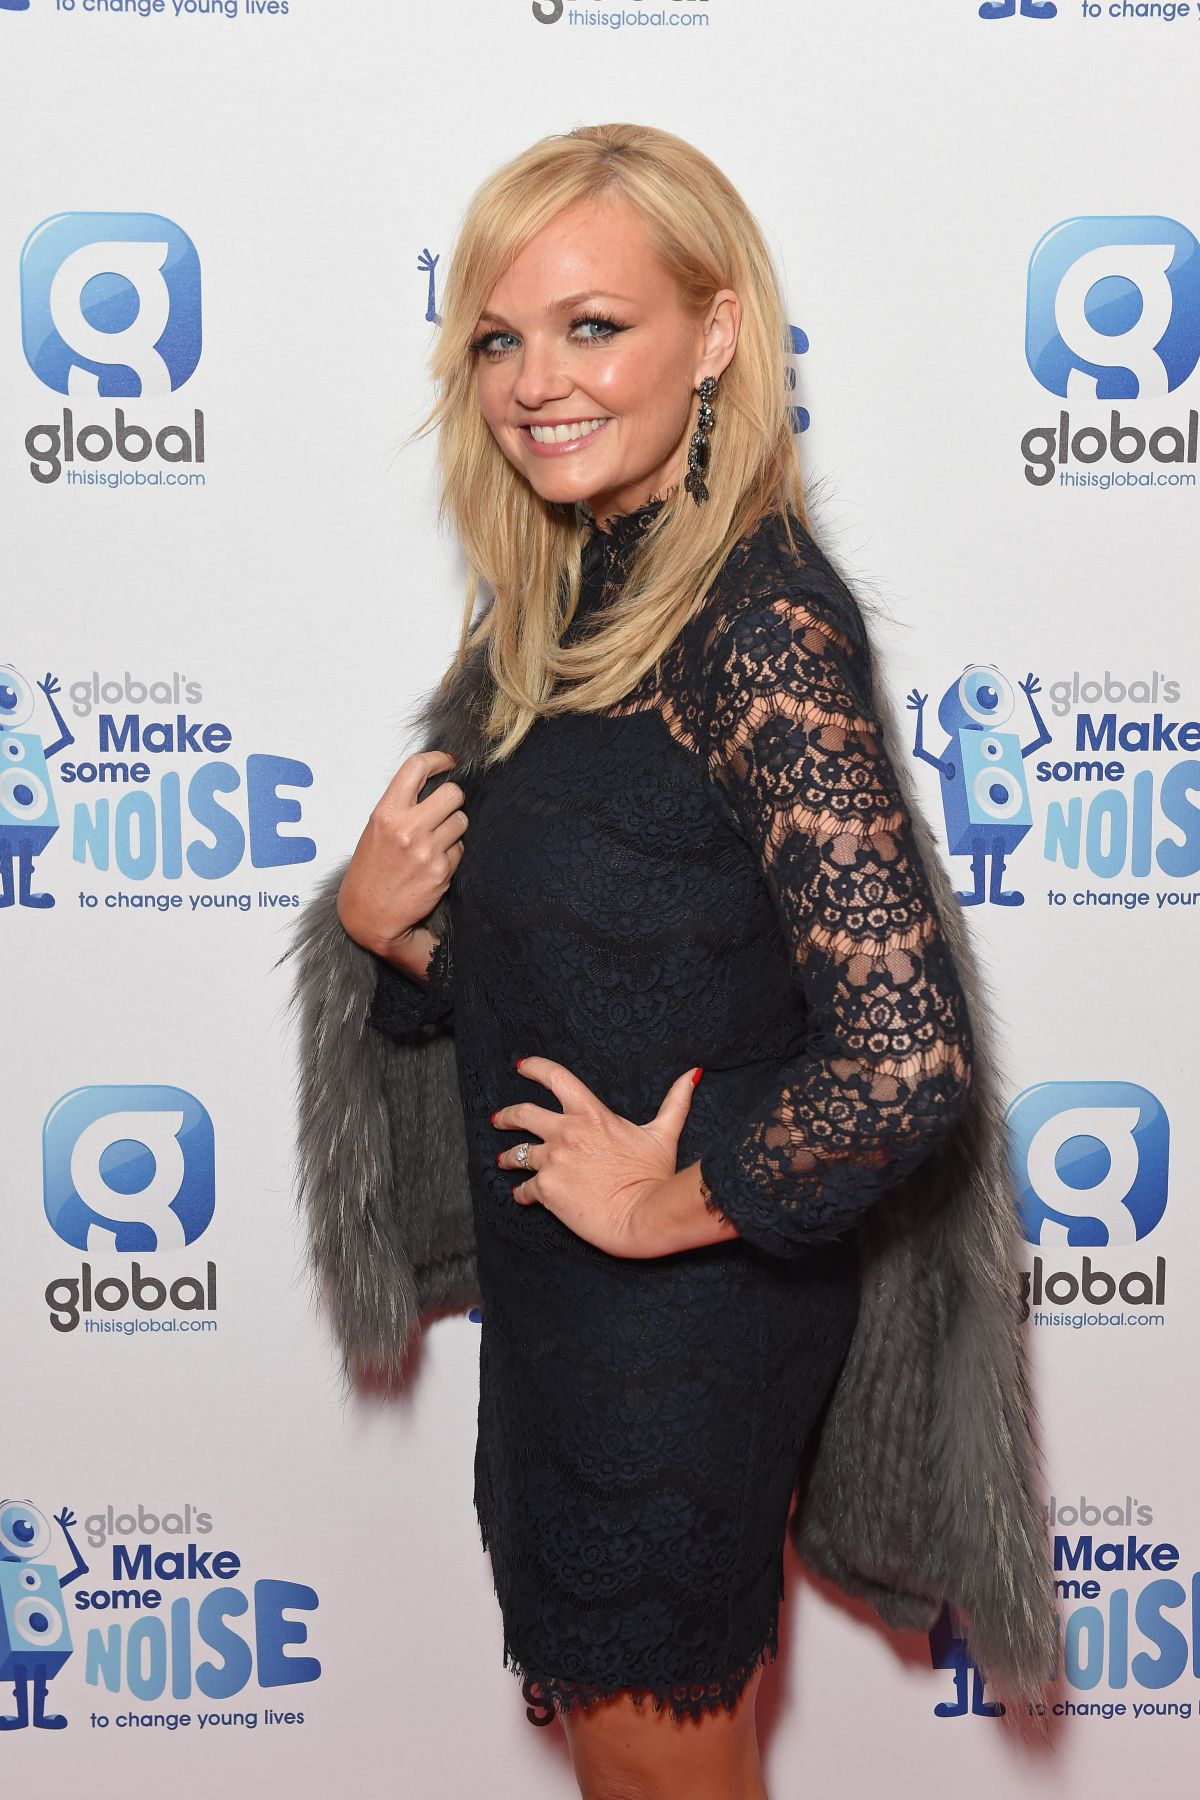 EMMA BUNTON at Global Make Some Noise Event in London